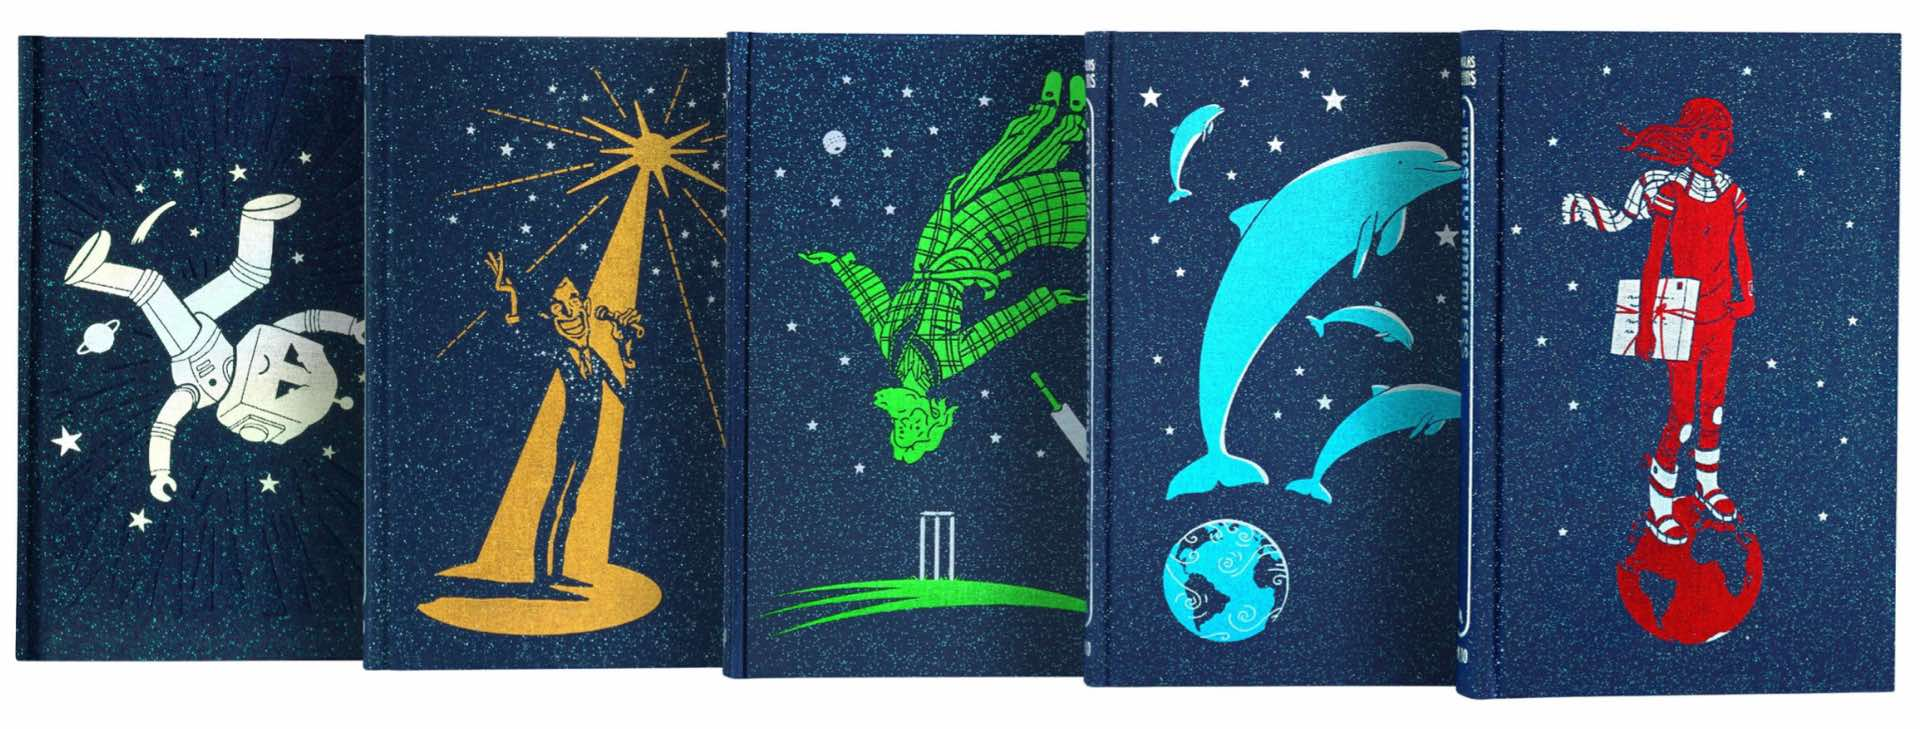 douglas-adams-the-complete-hitchikers-guide-series-by-the-folio-society